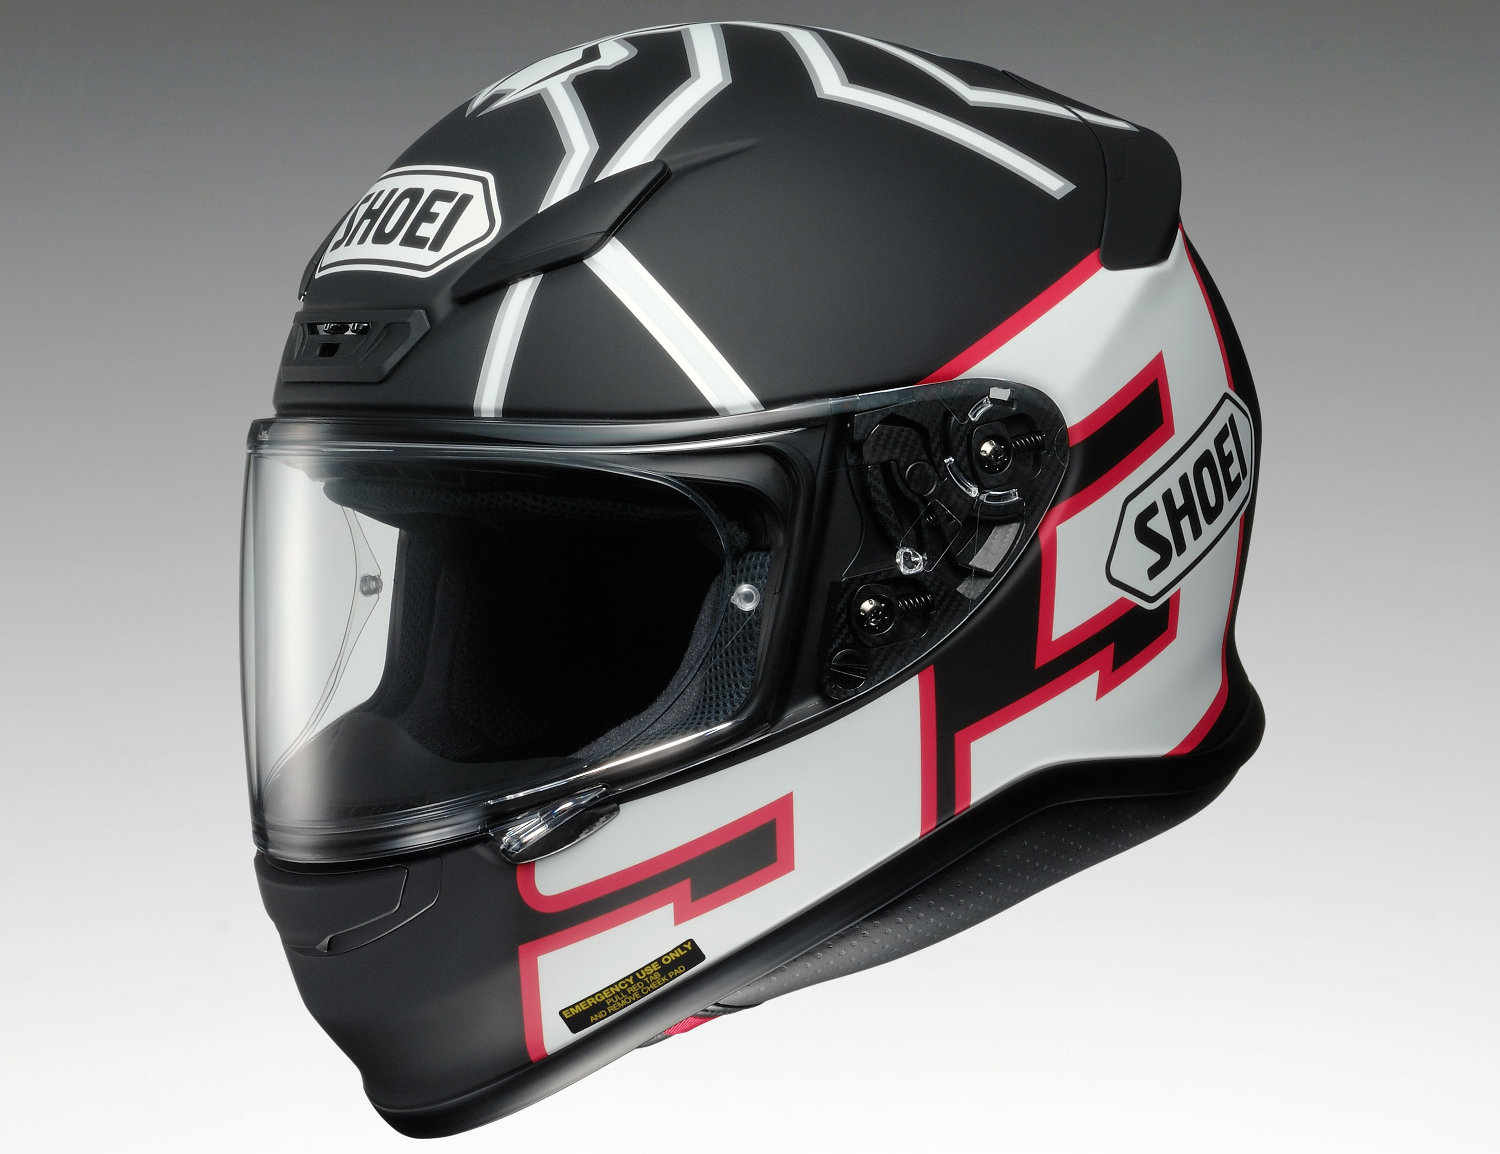 Casque Shoei NXR Black Ant Marquez Replica 2014